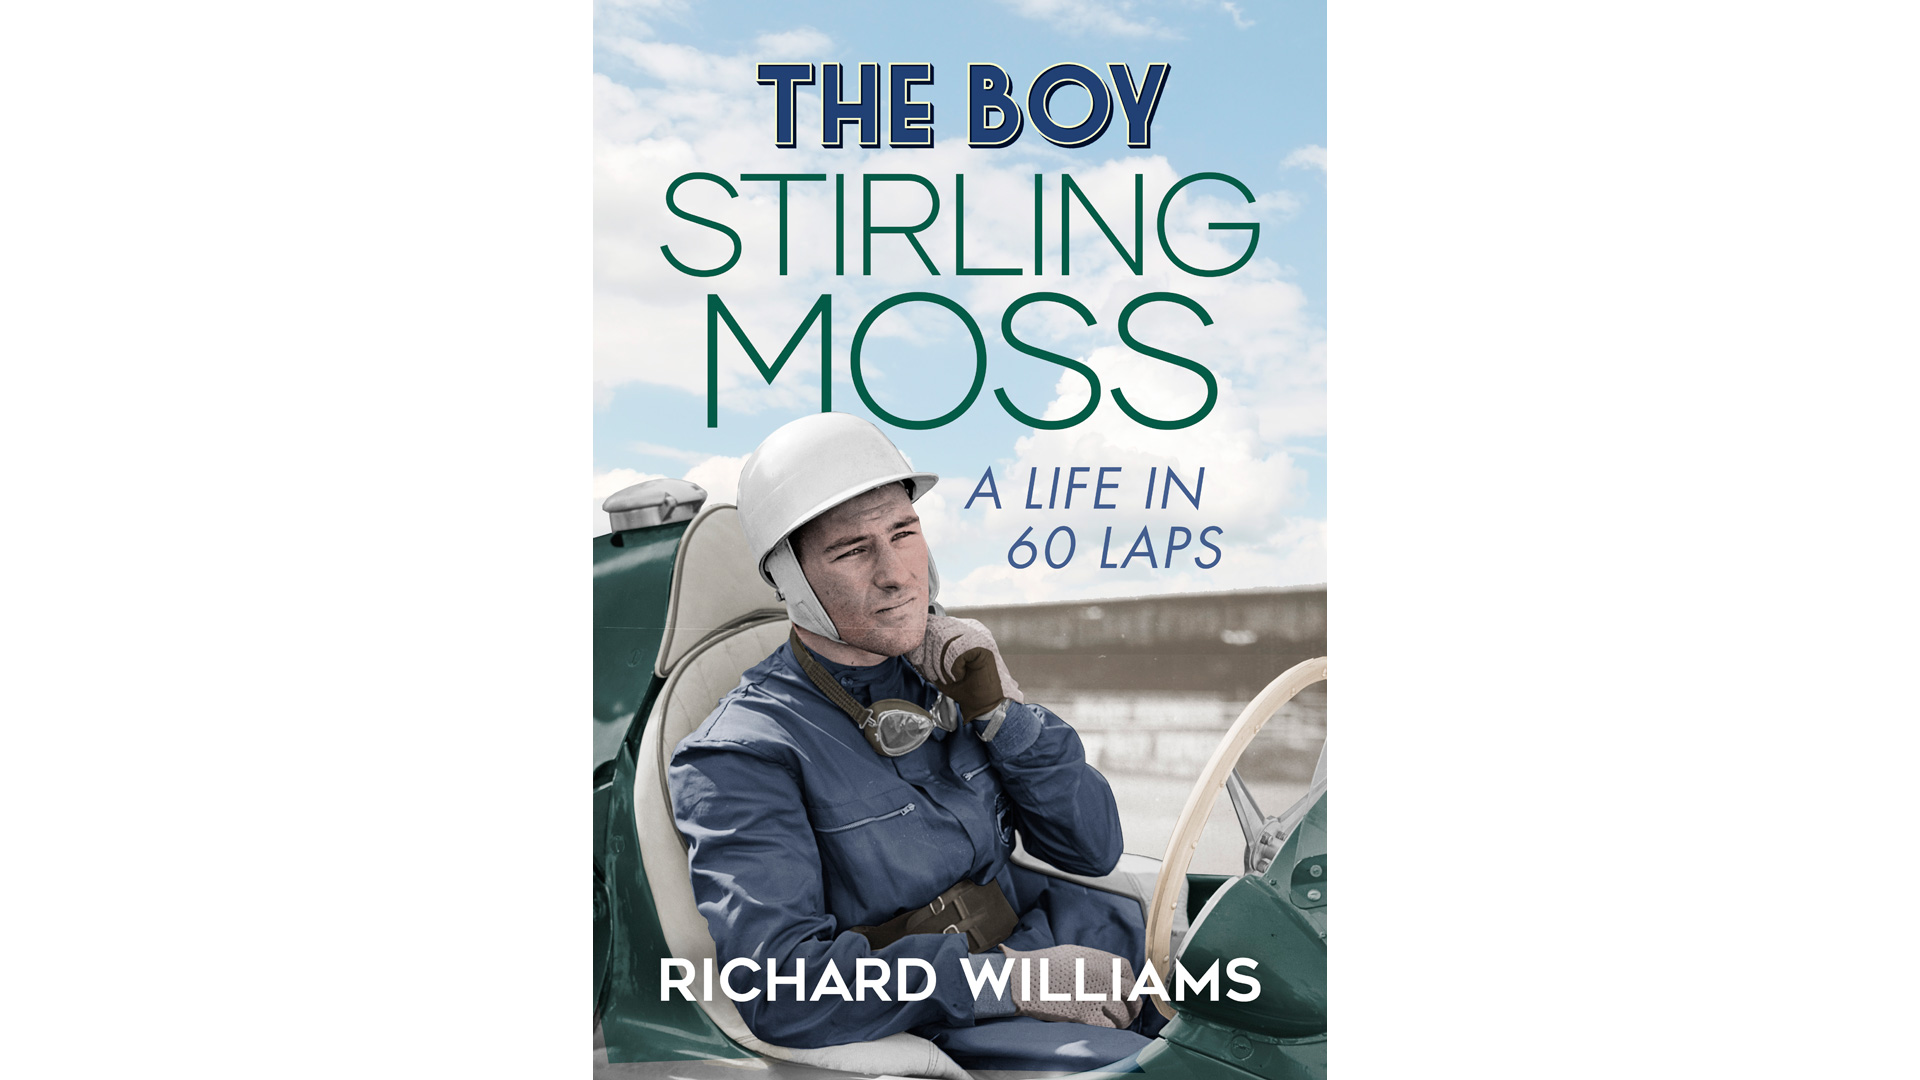 The Boy - Stirling Moss by Richard Williams